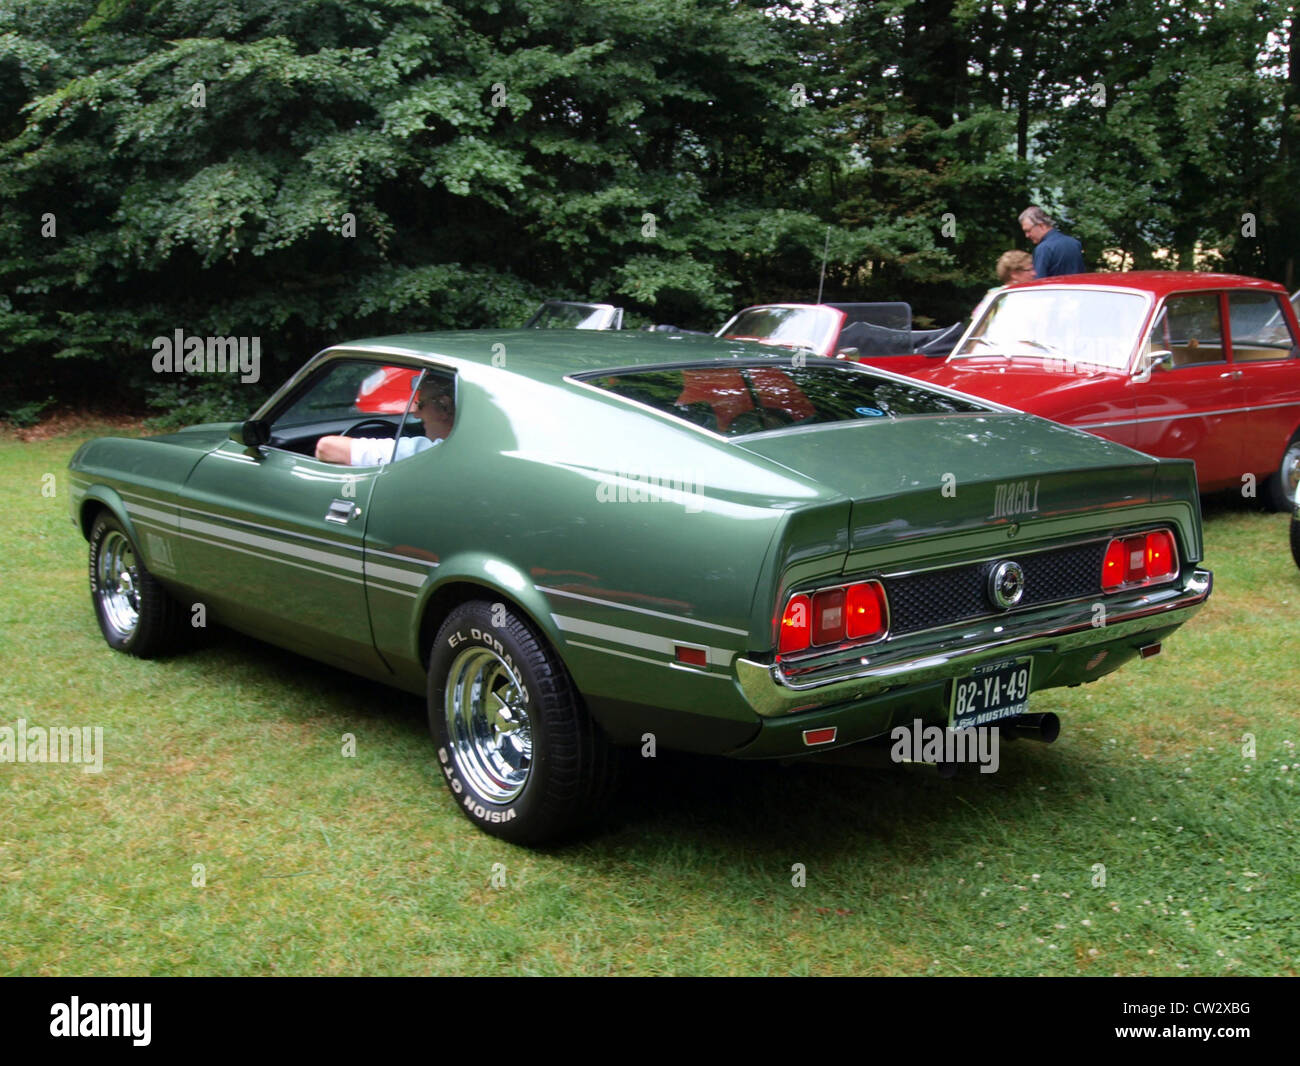 Ford mustang mach 1 1973 stock photo 49851748 alamy